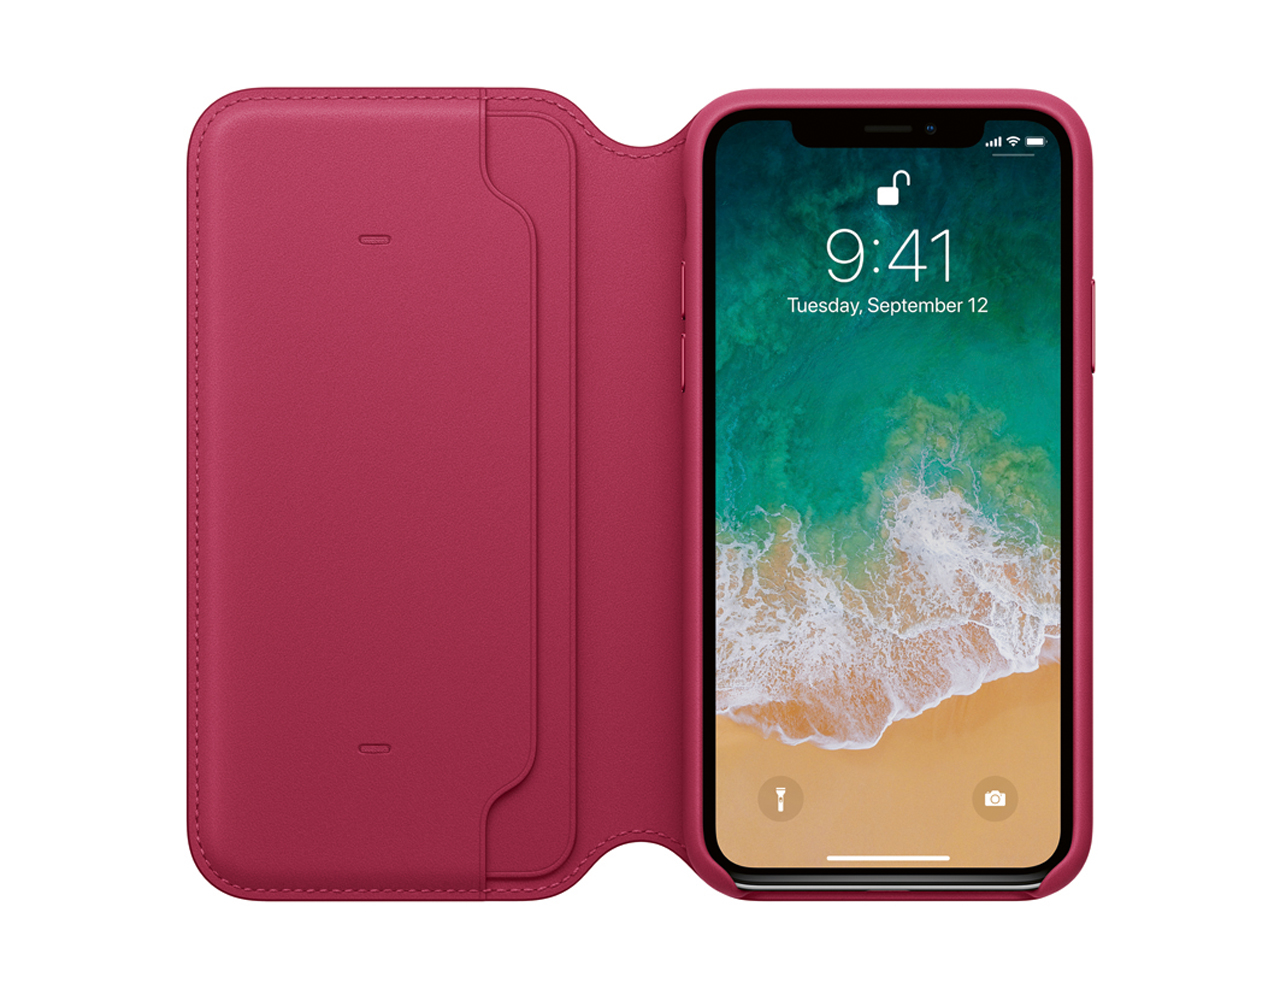 Leather Case for the iPhone X